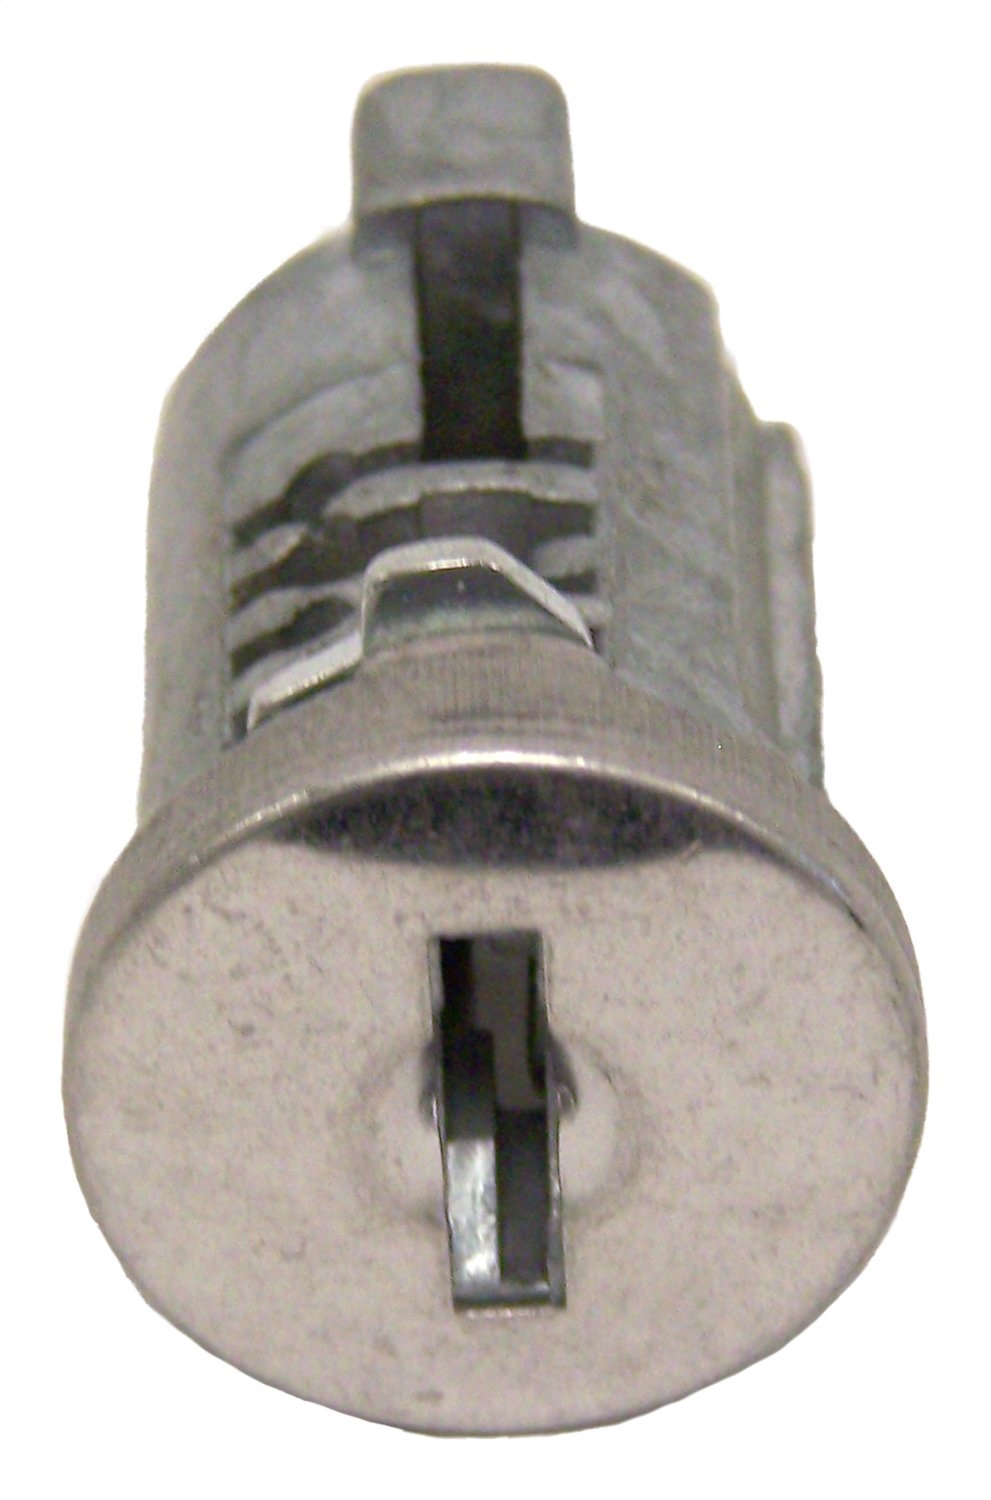 Crown Automotive 4746305 Console Lock Cylinder Fits 01-04 TJ Wrangler